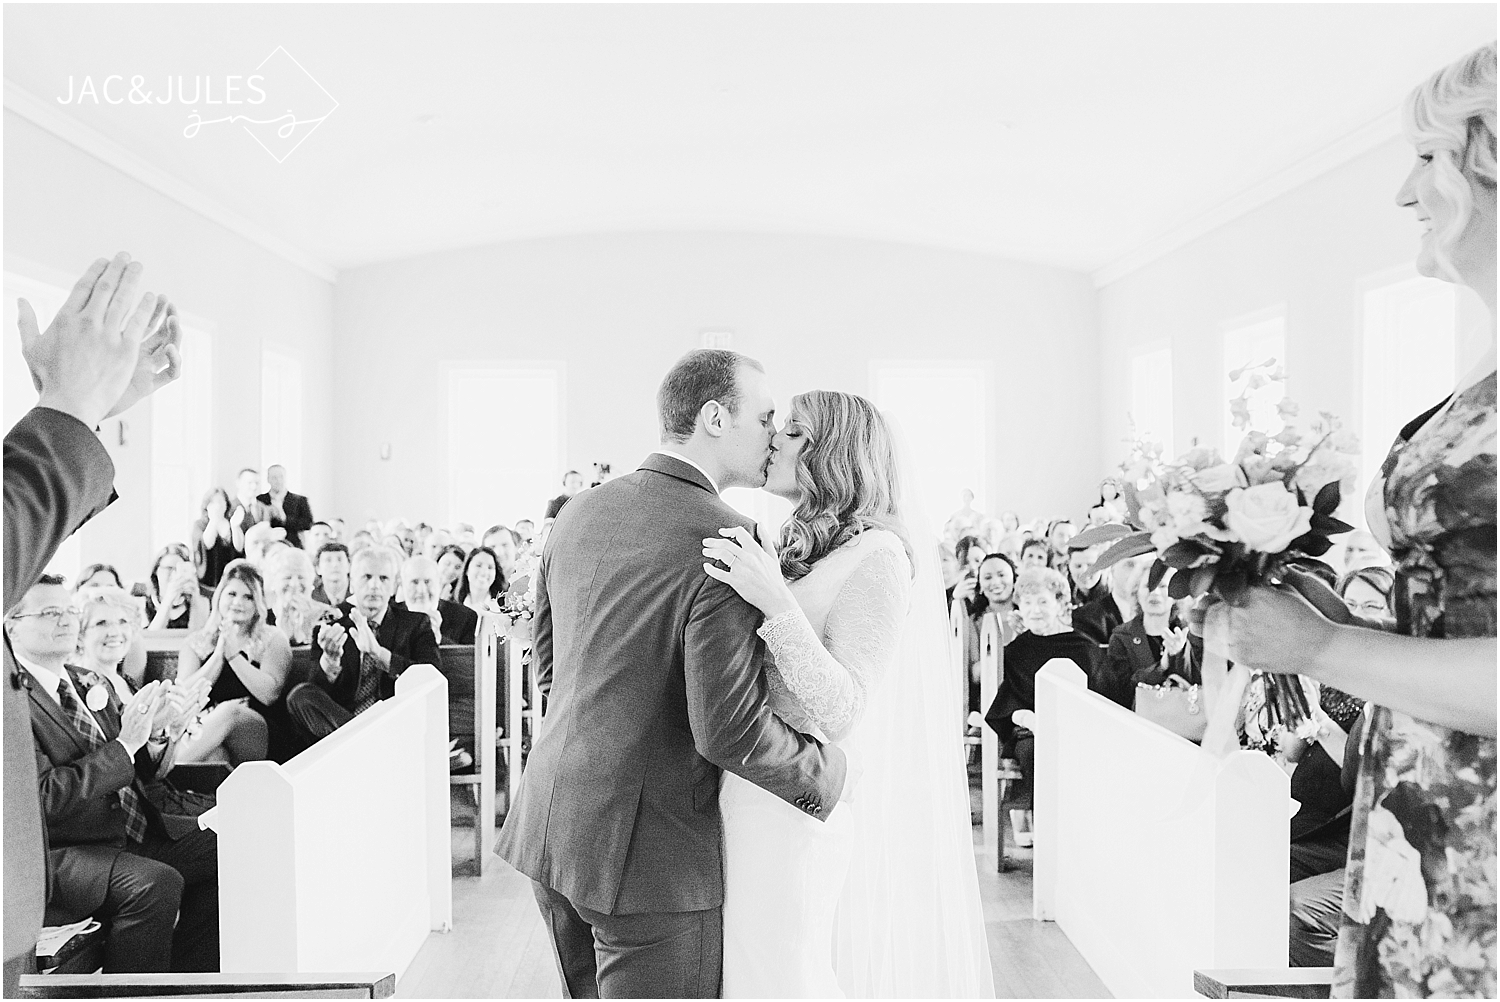 jacnjules photograph wedding ceremony at the Chapel at Allaire State Park